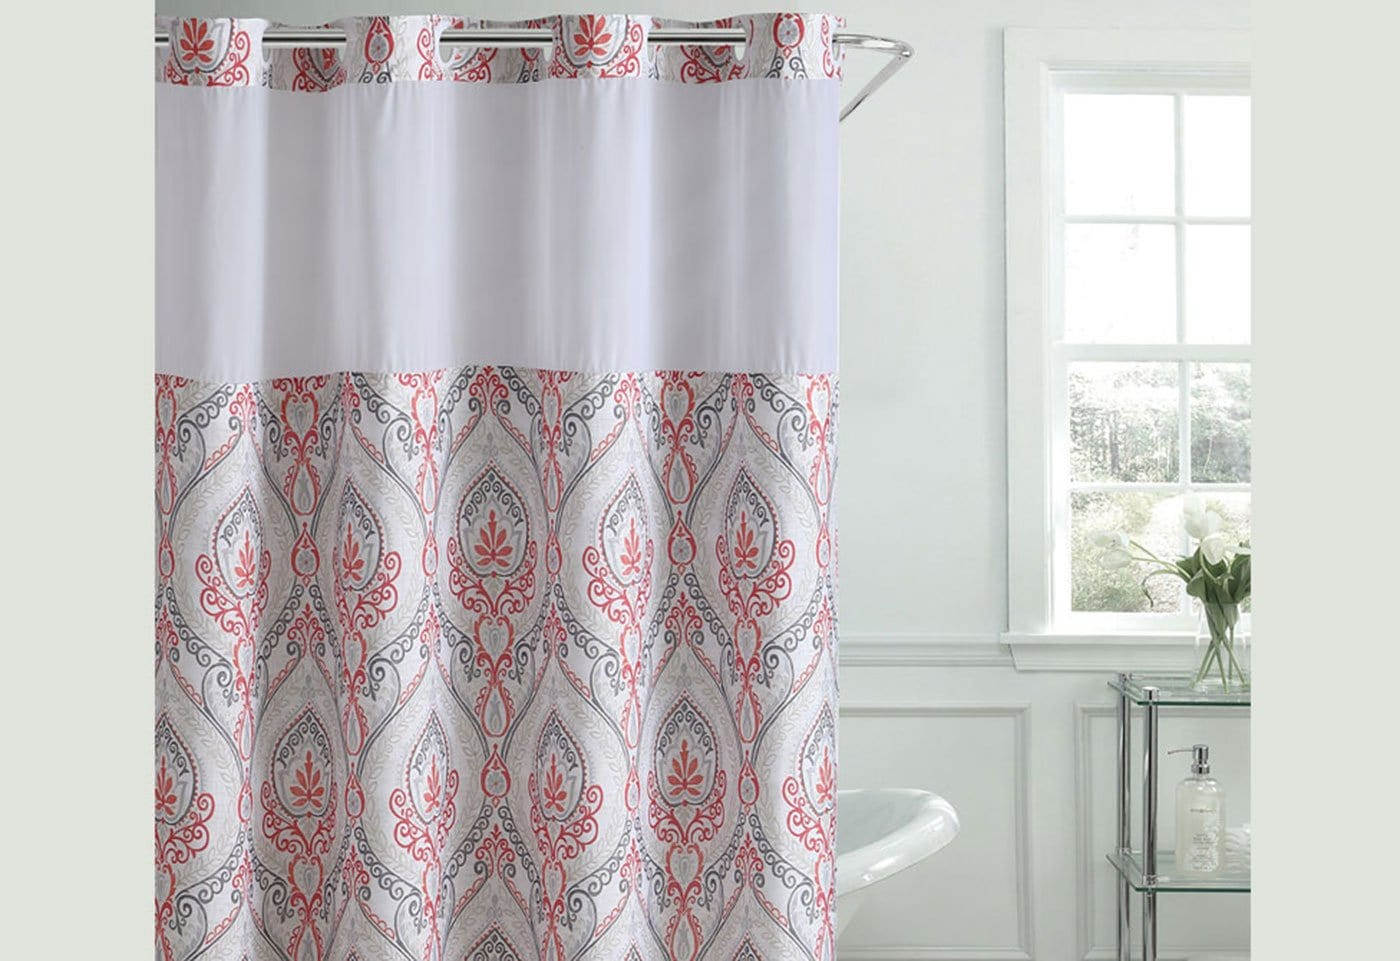 Hookless French Damask Print Shower Curtain